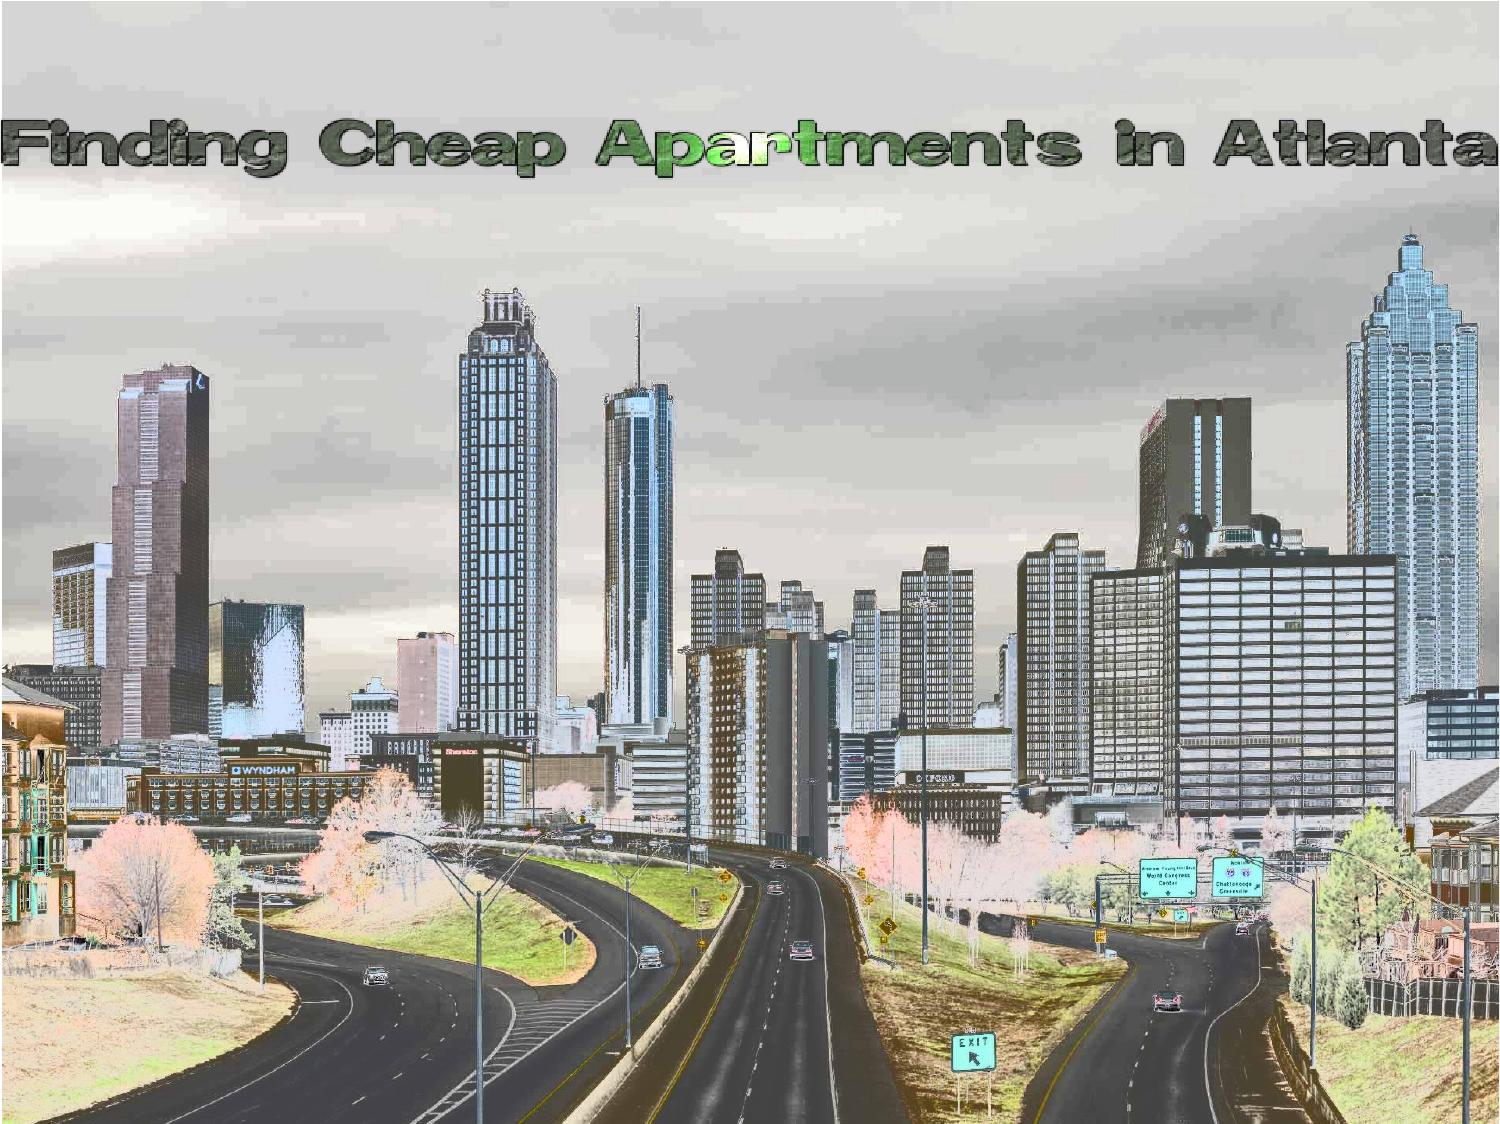 Finding cheap apartments in Atlanta by Inna Dennis - Issuu